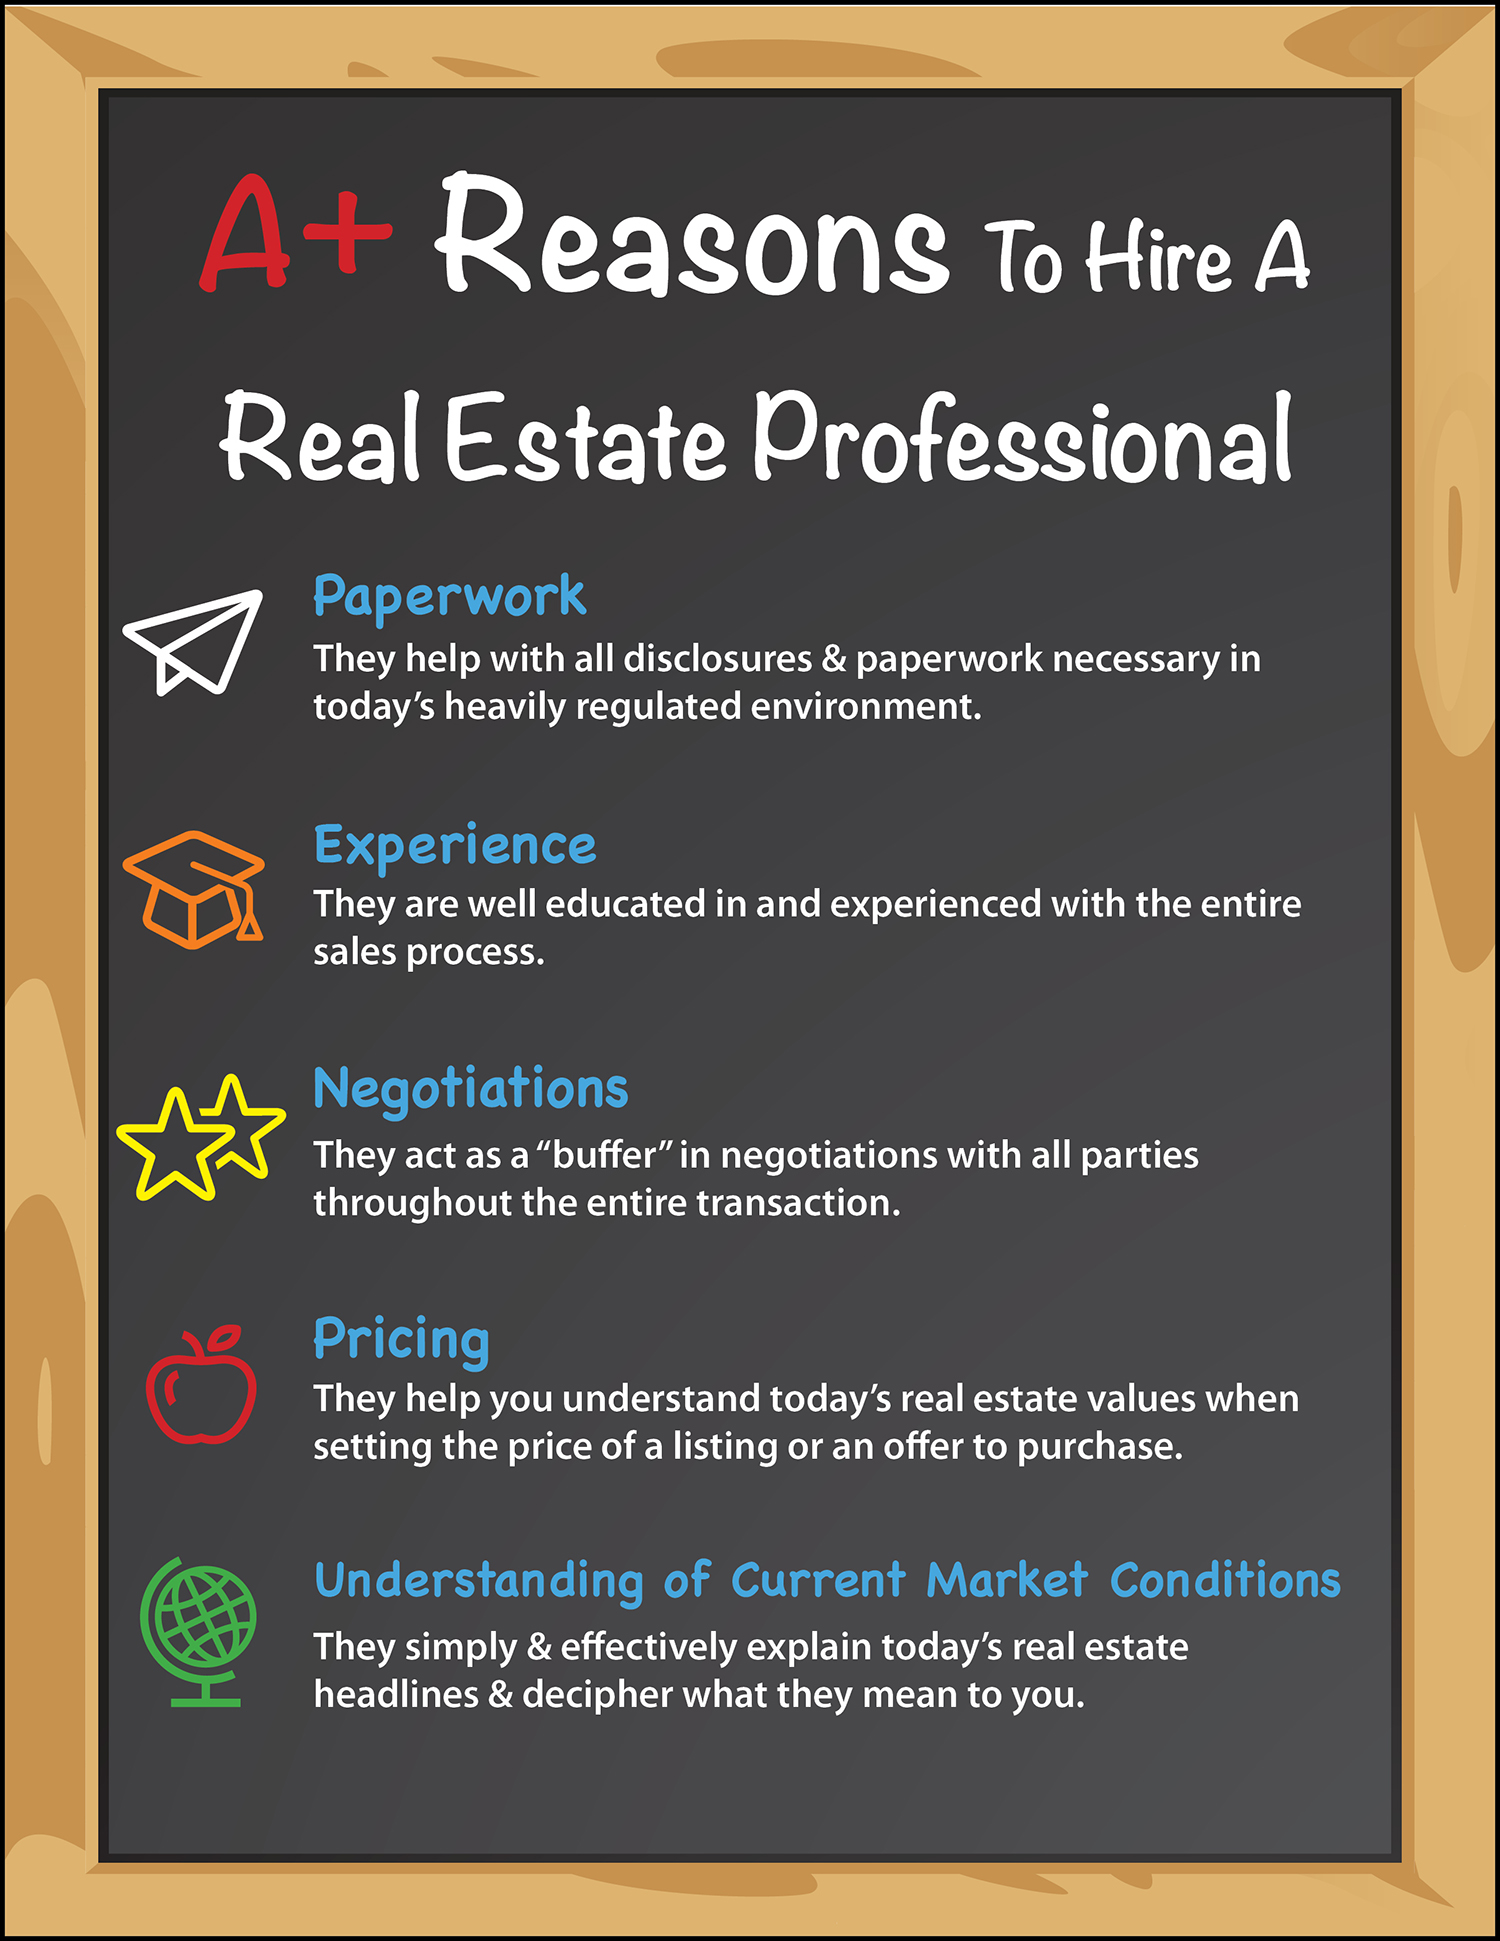 Want to Get an A? Hire A Real Estate Pro [INFOGRAPHIC]   Simplifying The Market